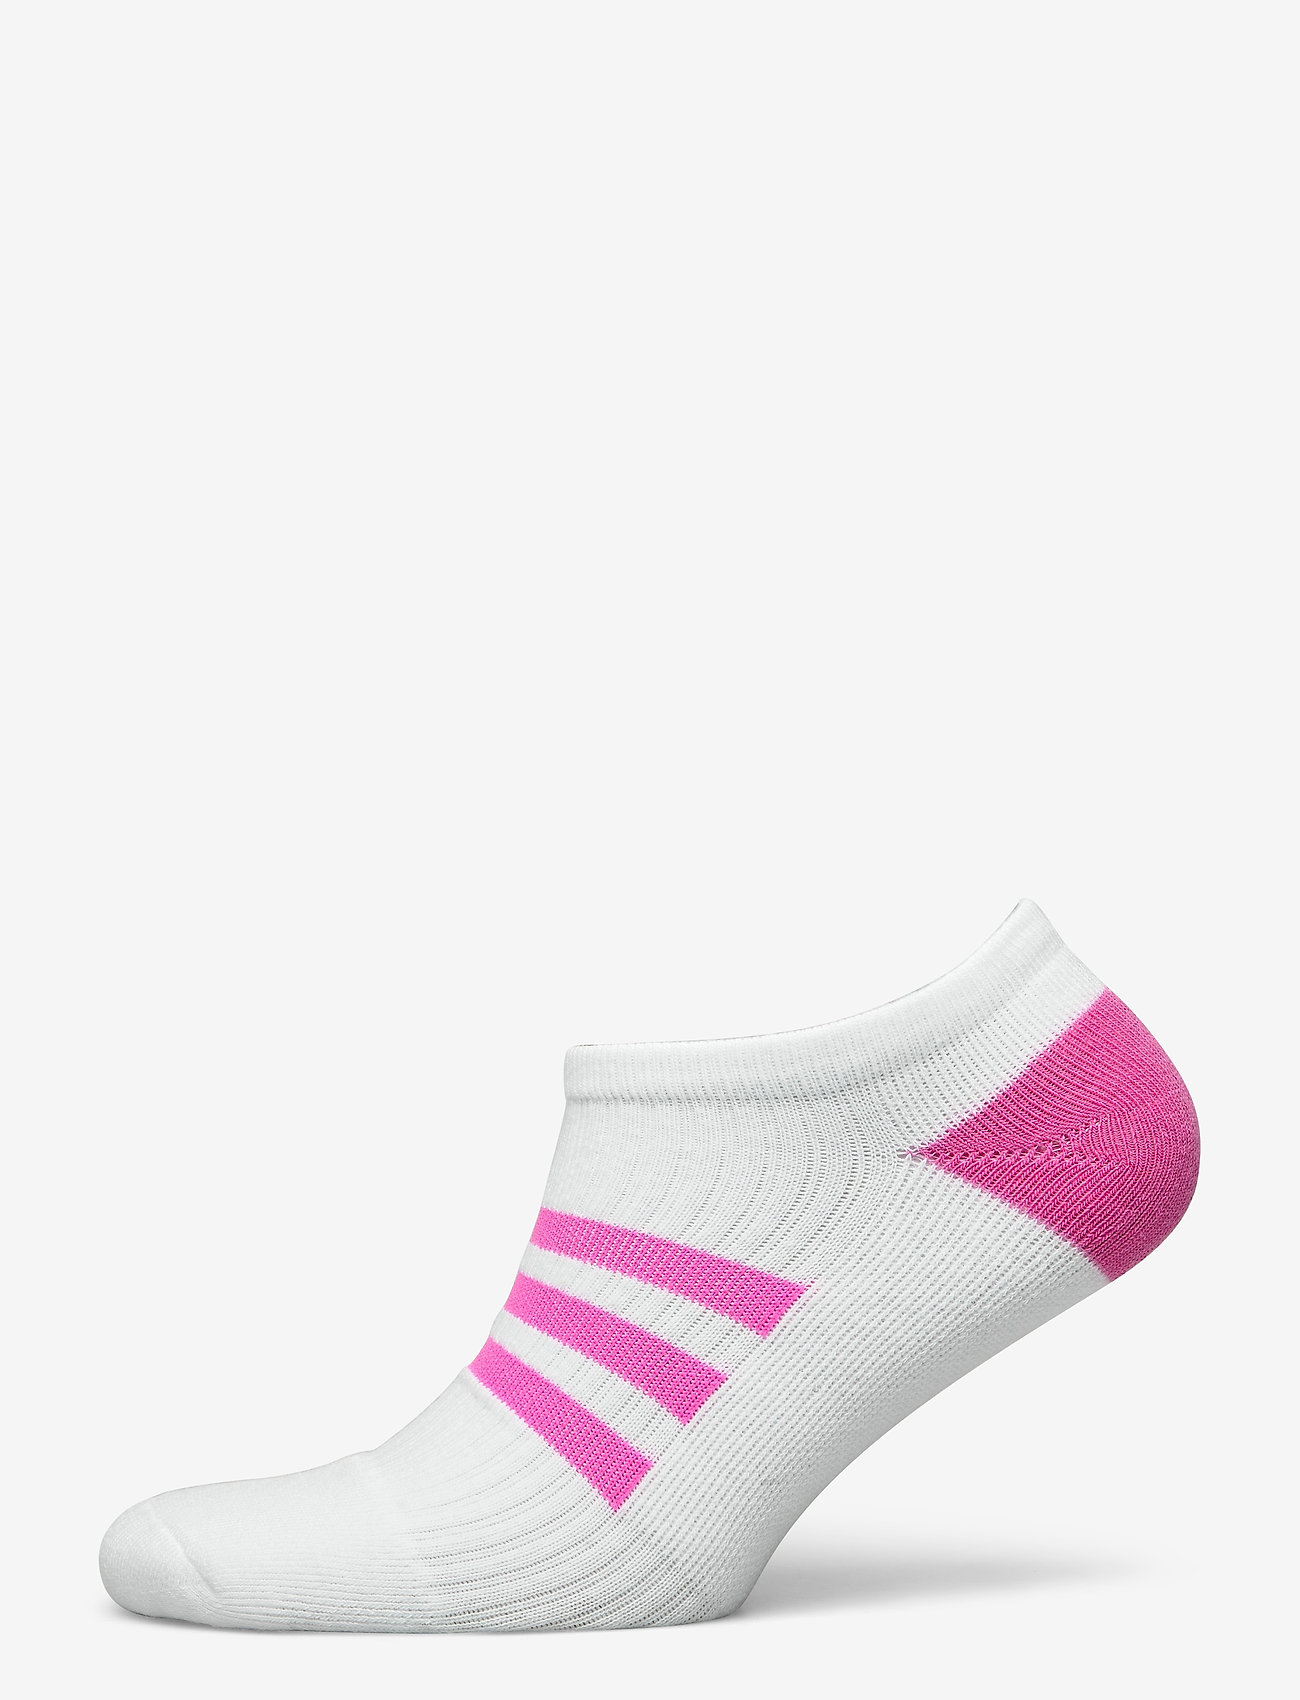 adidas Golf - COMFORT LOW SK - ankle socks - white/scrpnk - 0